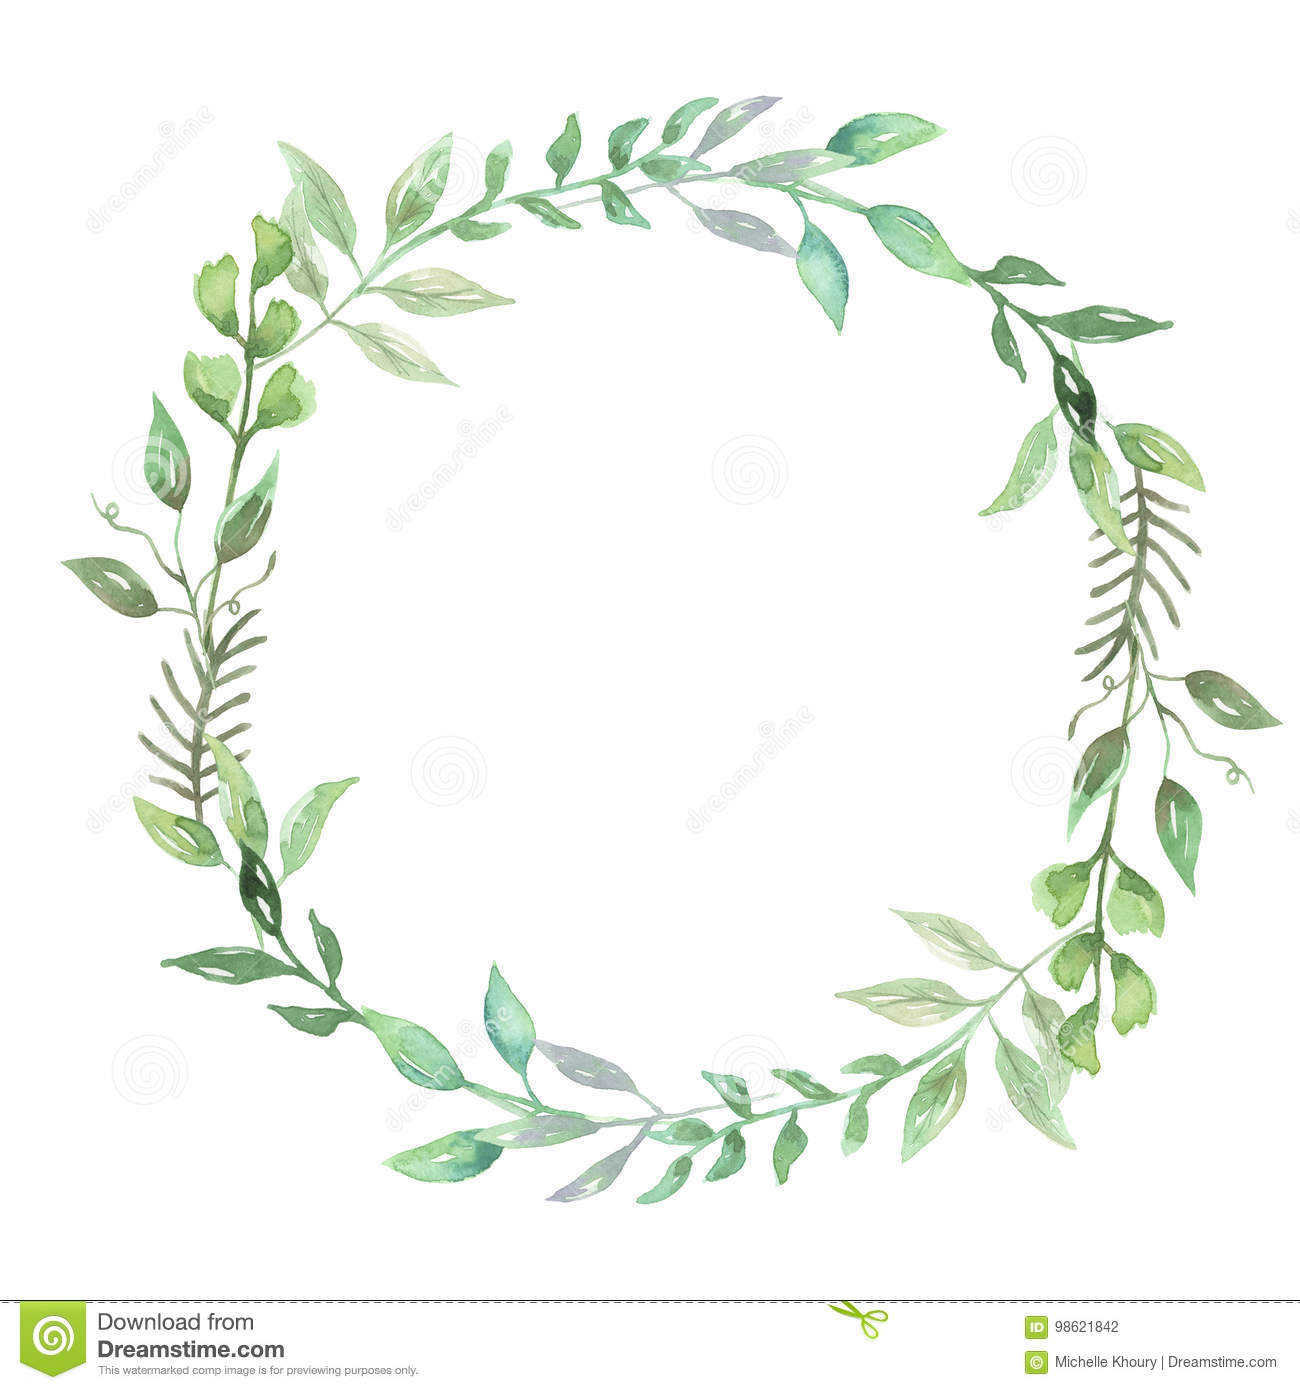 Download Watercolor Greenery Leaf Wreath Garland Spring Summer Wedding Leaves Stock Illustration